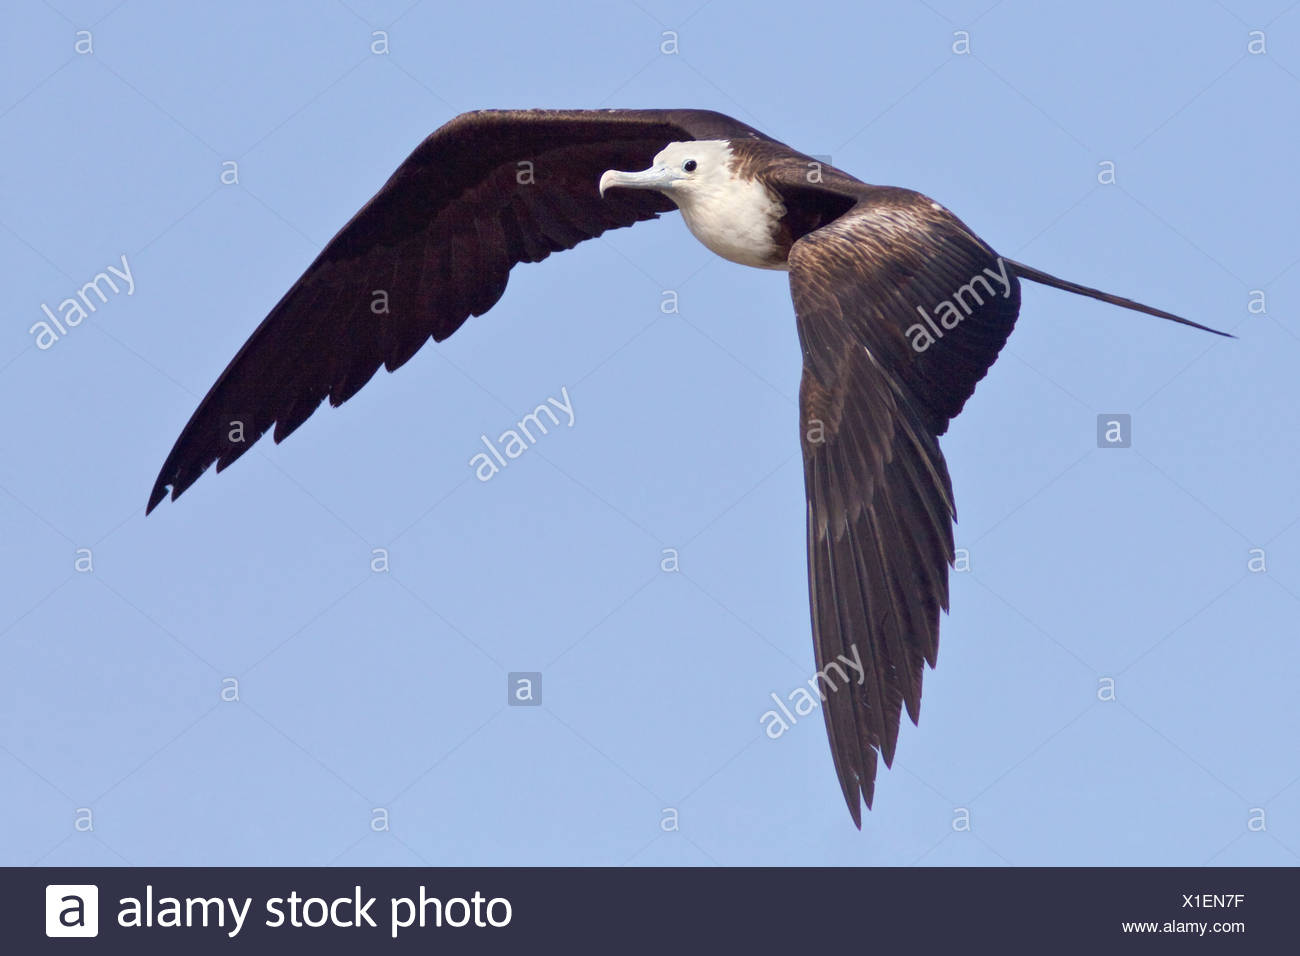 Magnificent Frigatebird (Fregata magnificens) flying and searching for food along the coast of Ecuador. Stock Photo